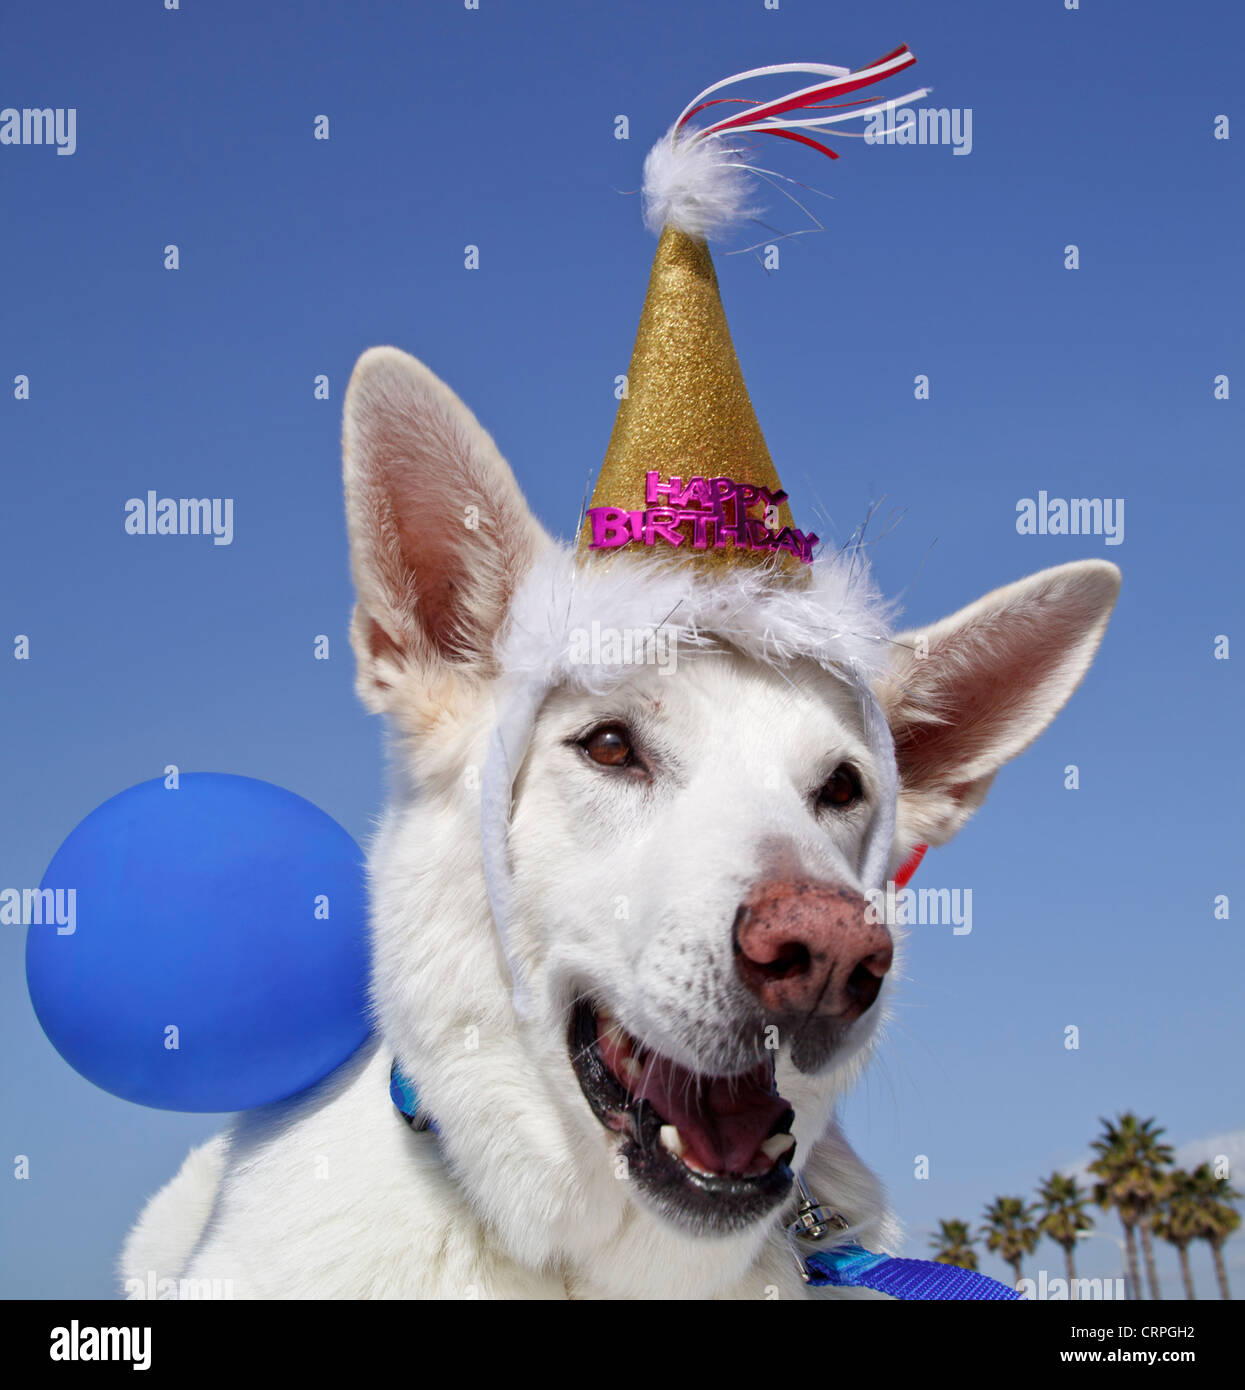 White German Shepherd with Happy Birthday decorations and balloons